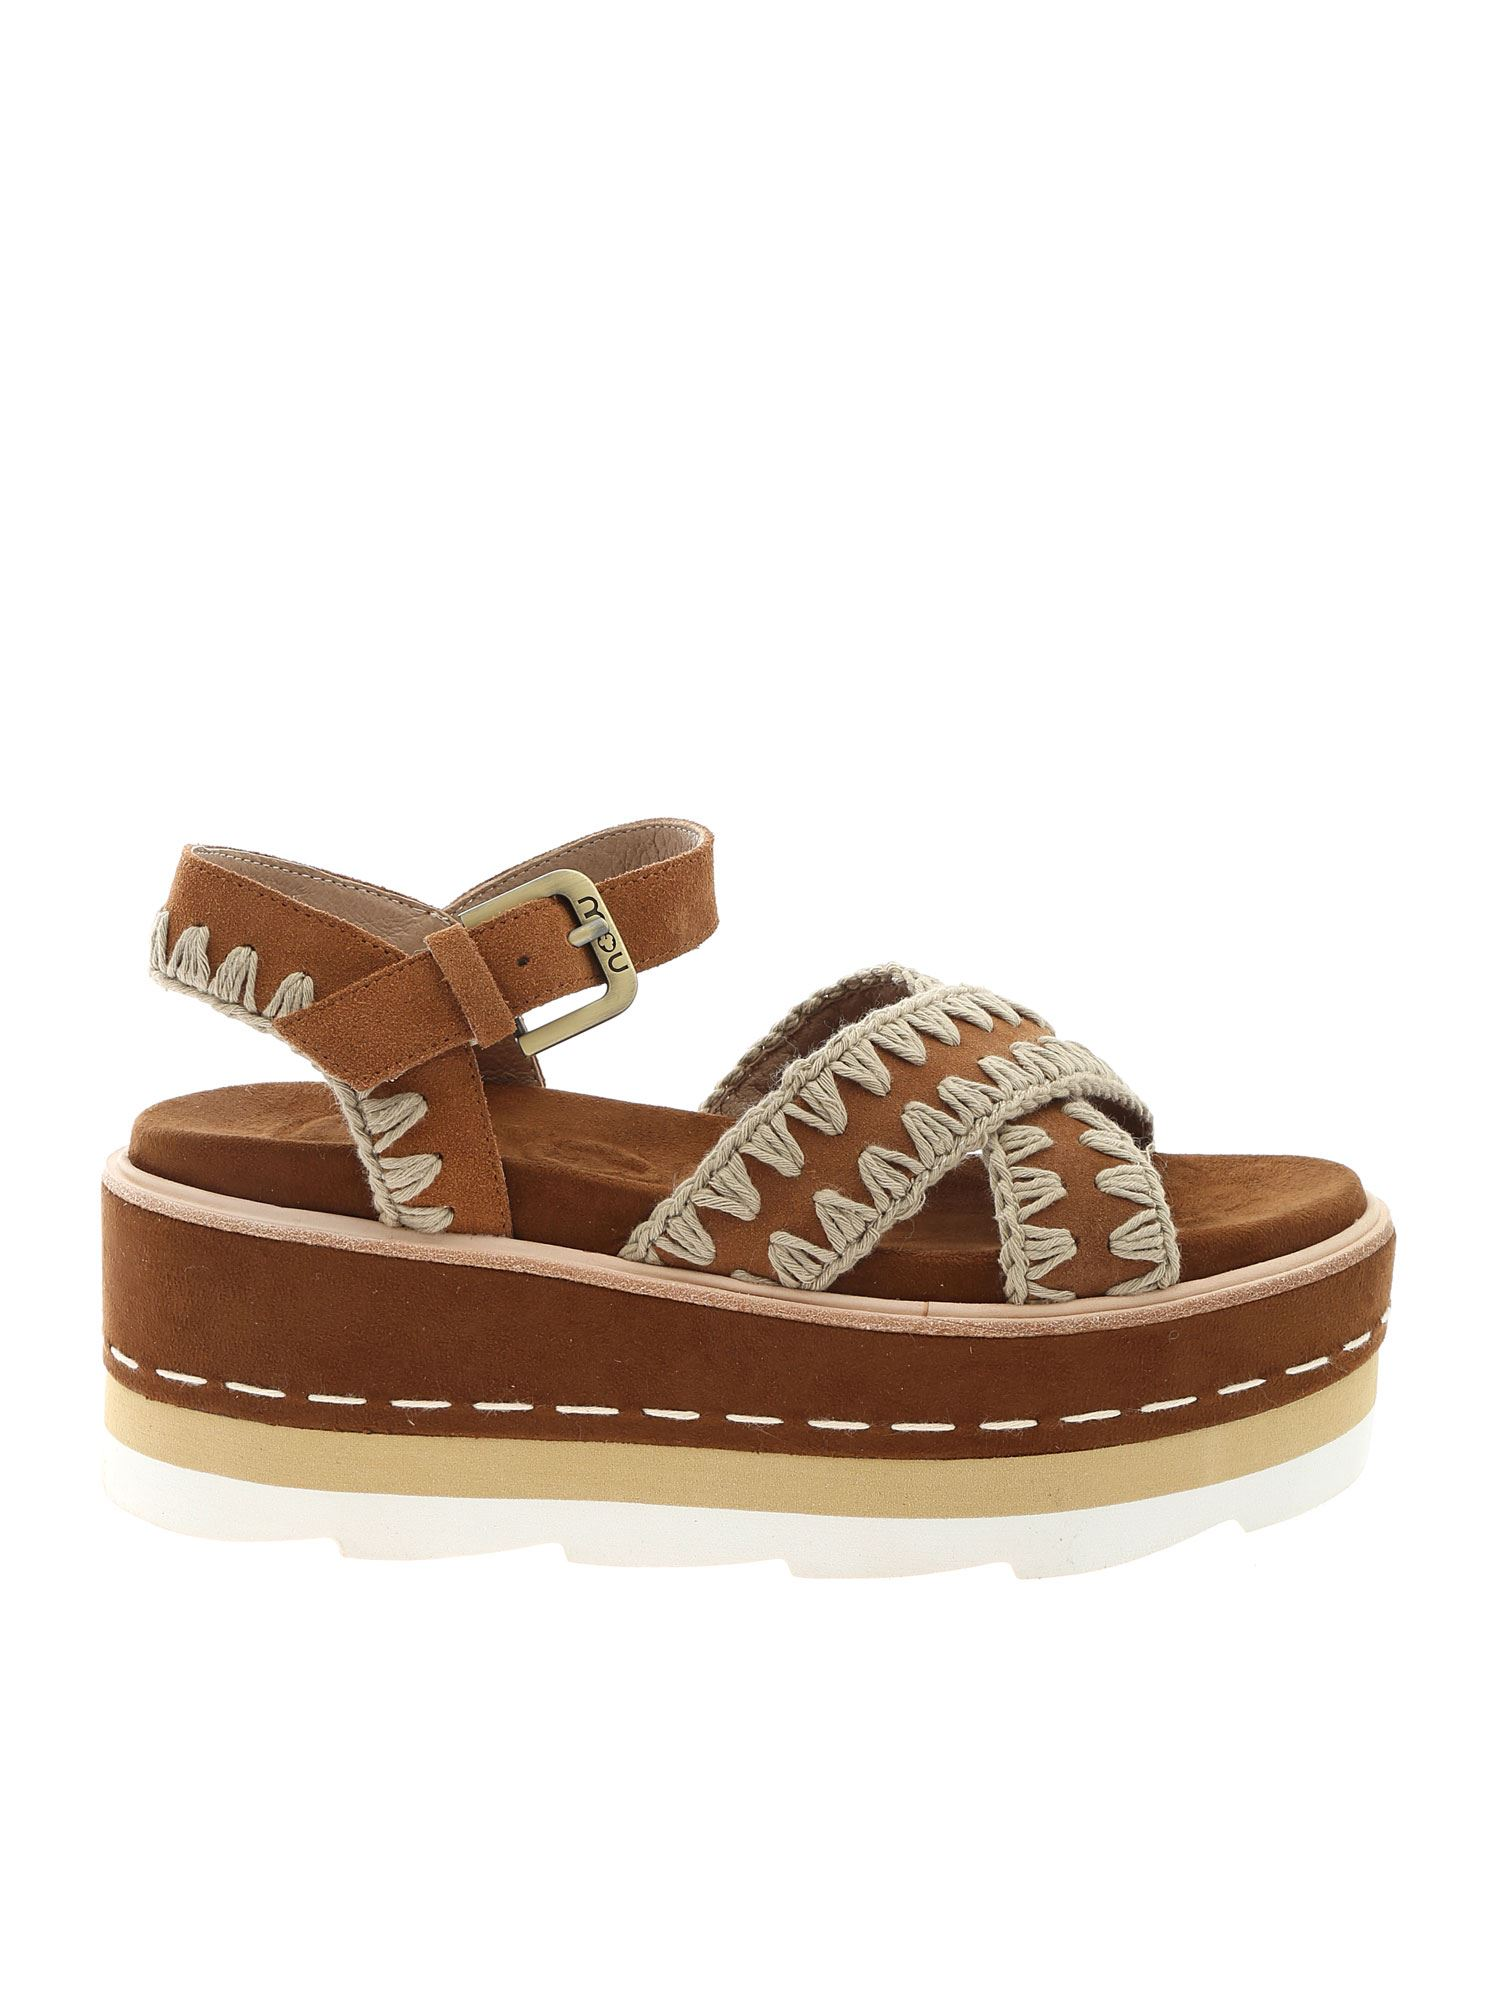 Mou PLATFORM CRISS SANDALS IN BROWN